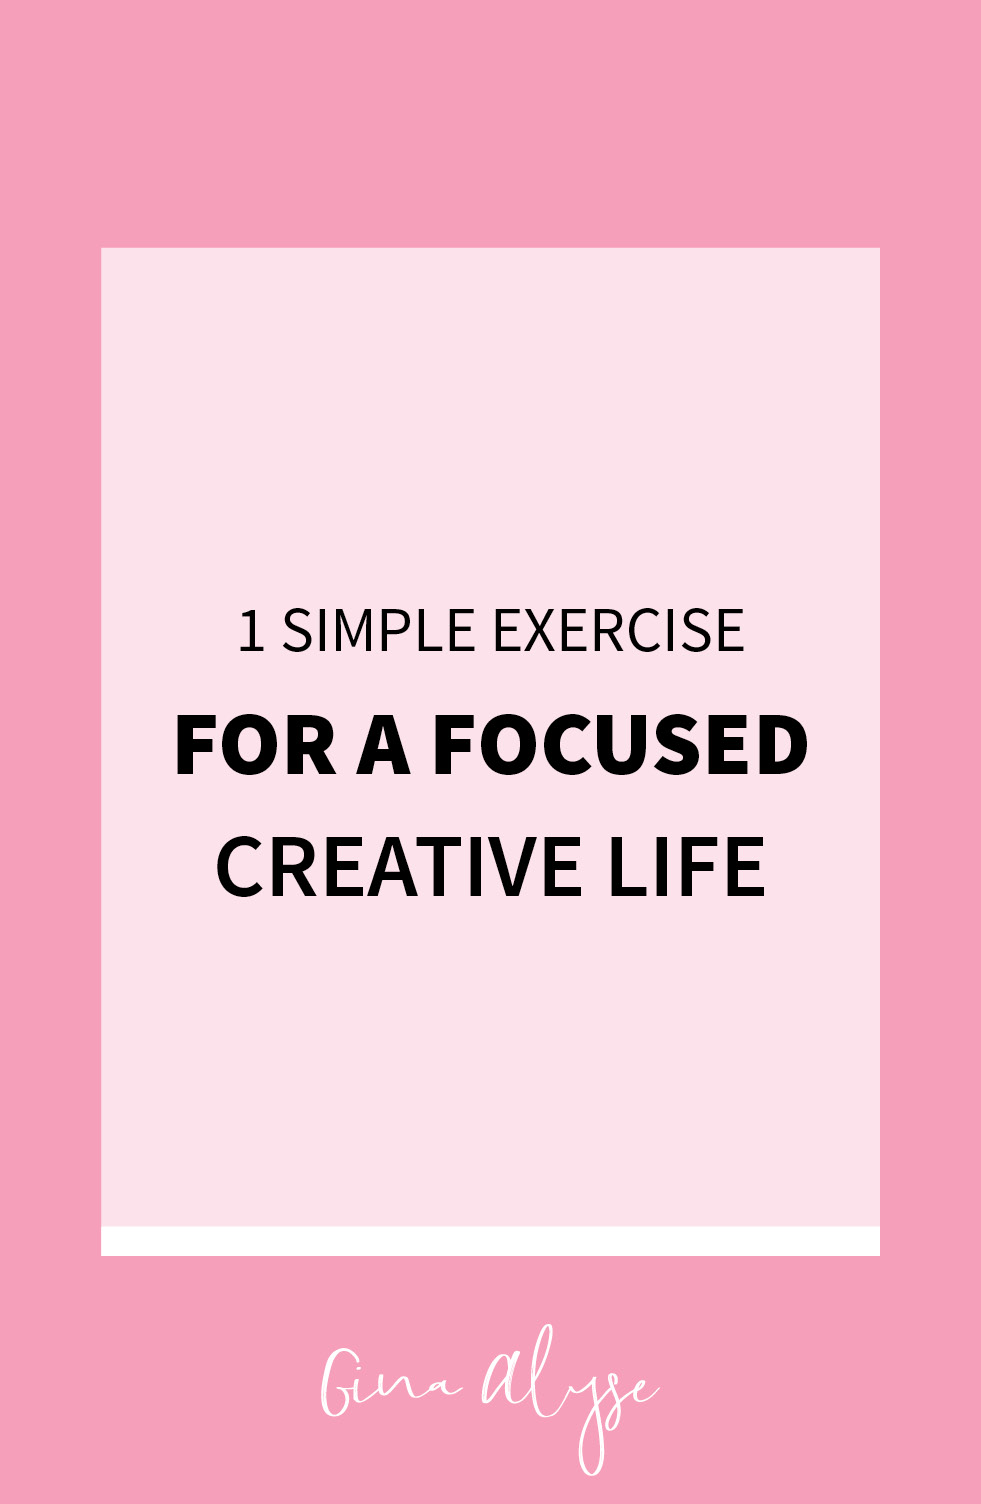 One Simple Exercise for More Focus